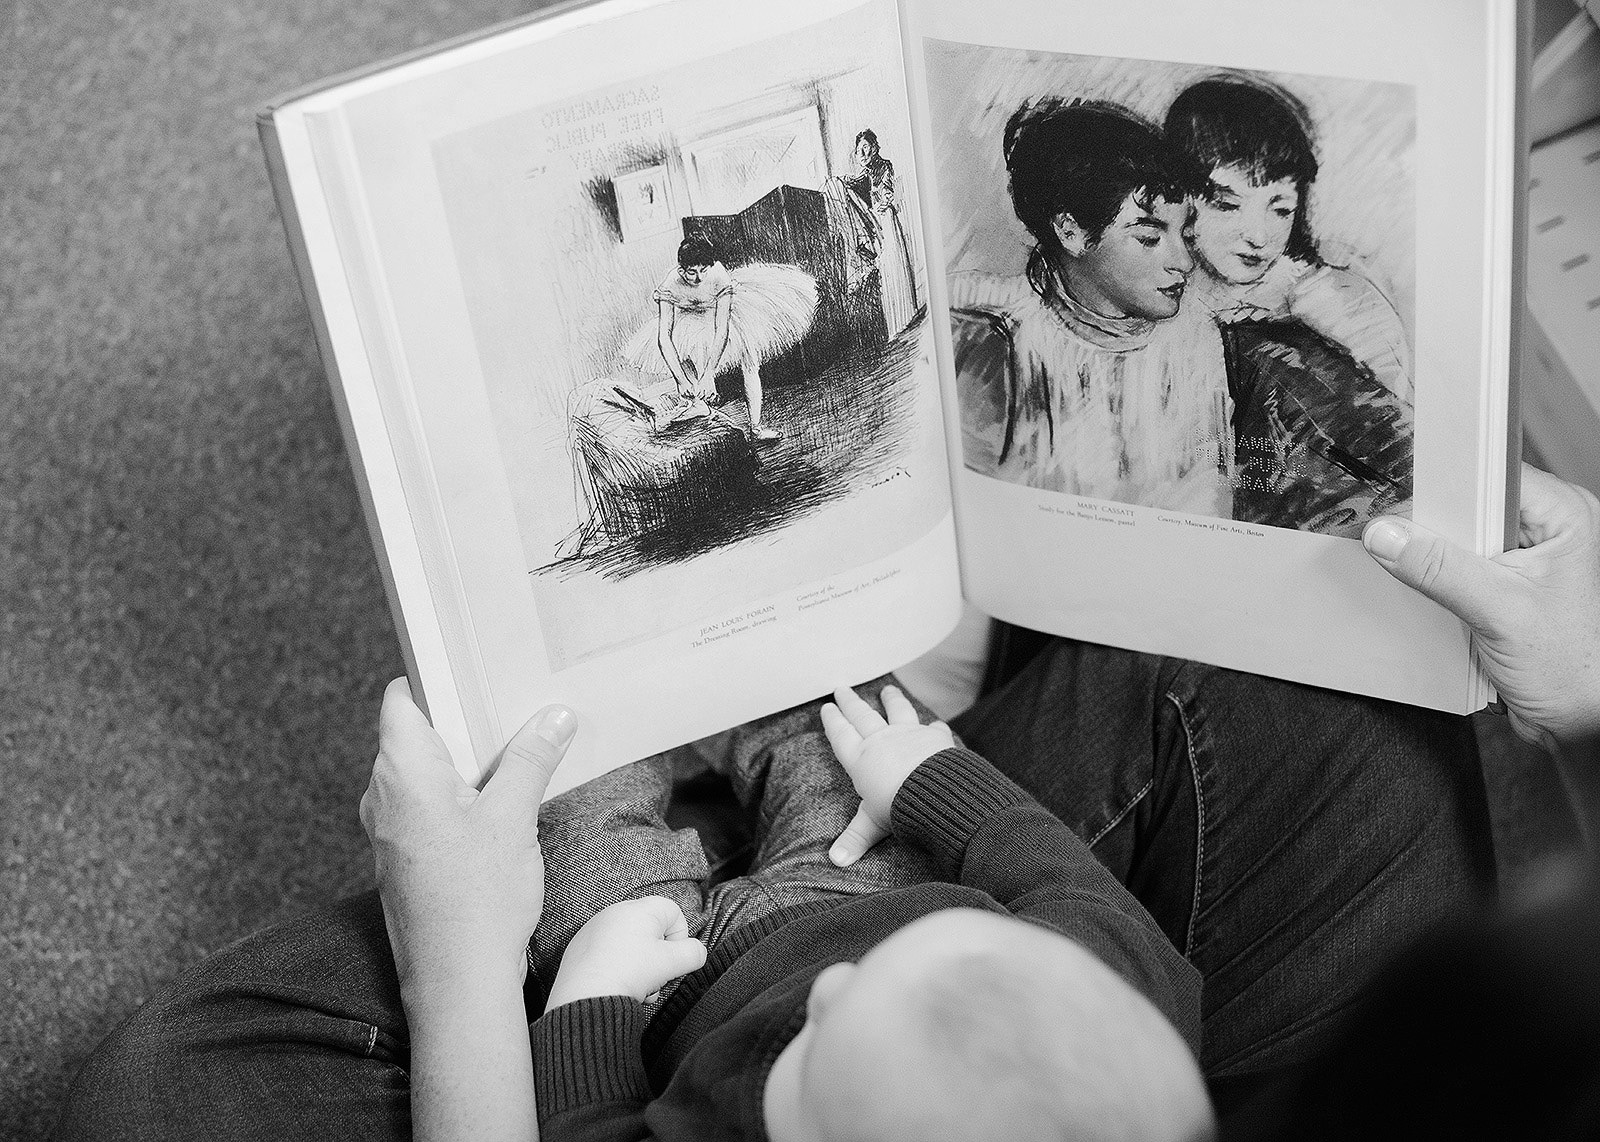 Mother Showing Baby Art Book in Downtown Central Library